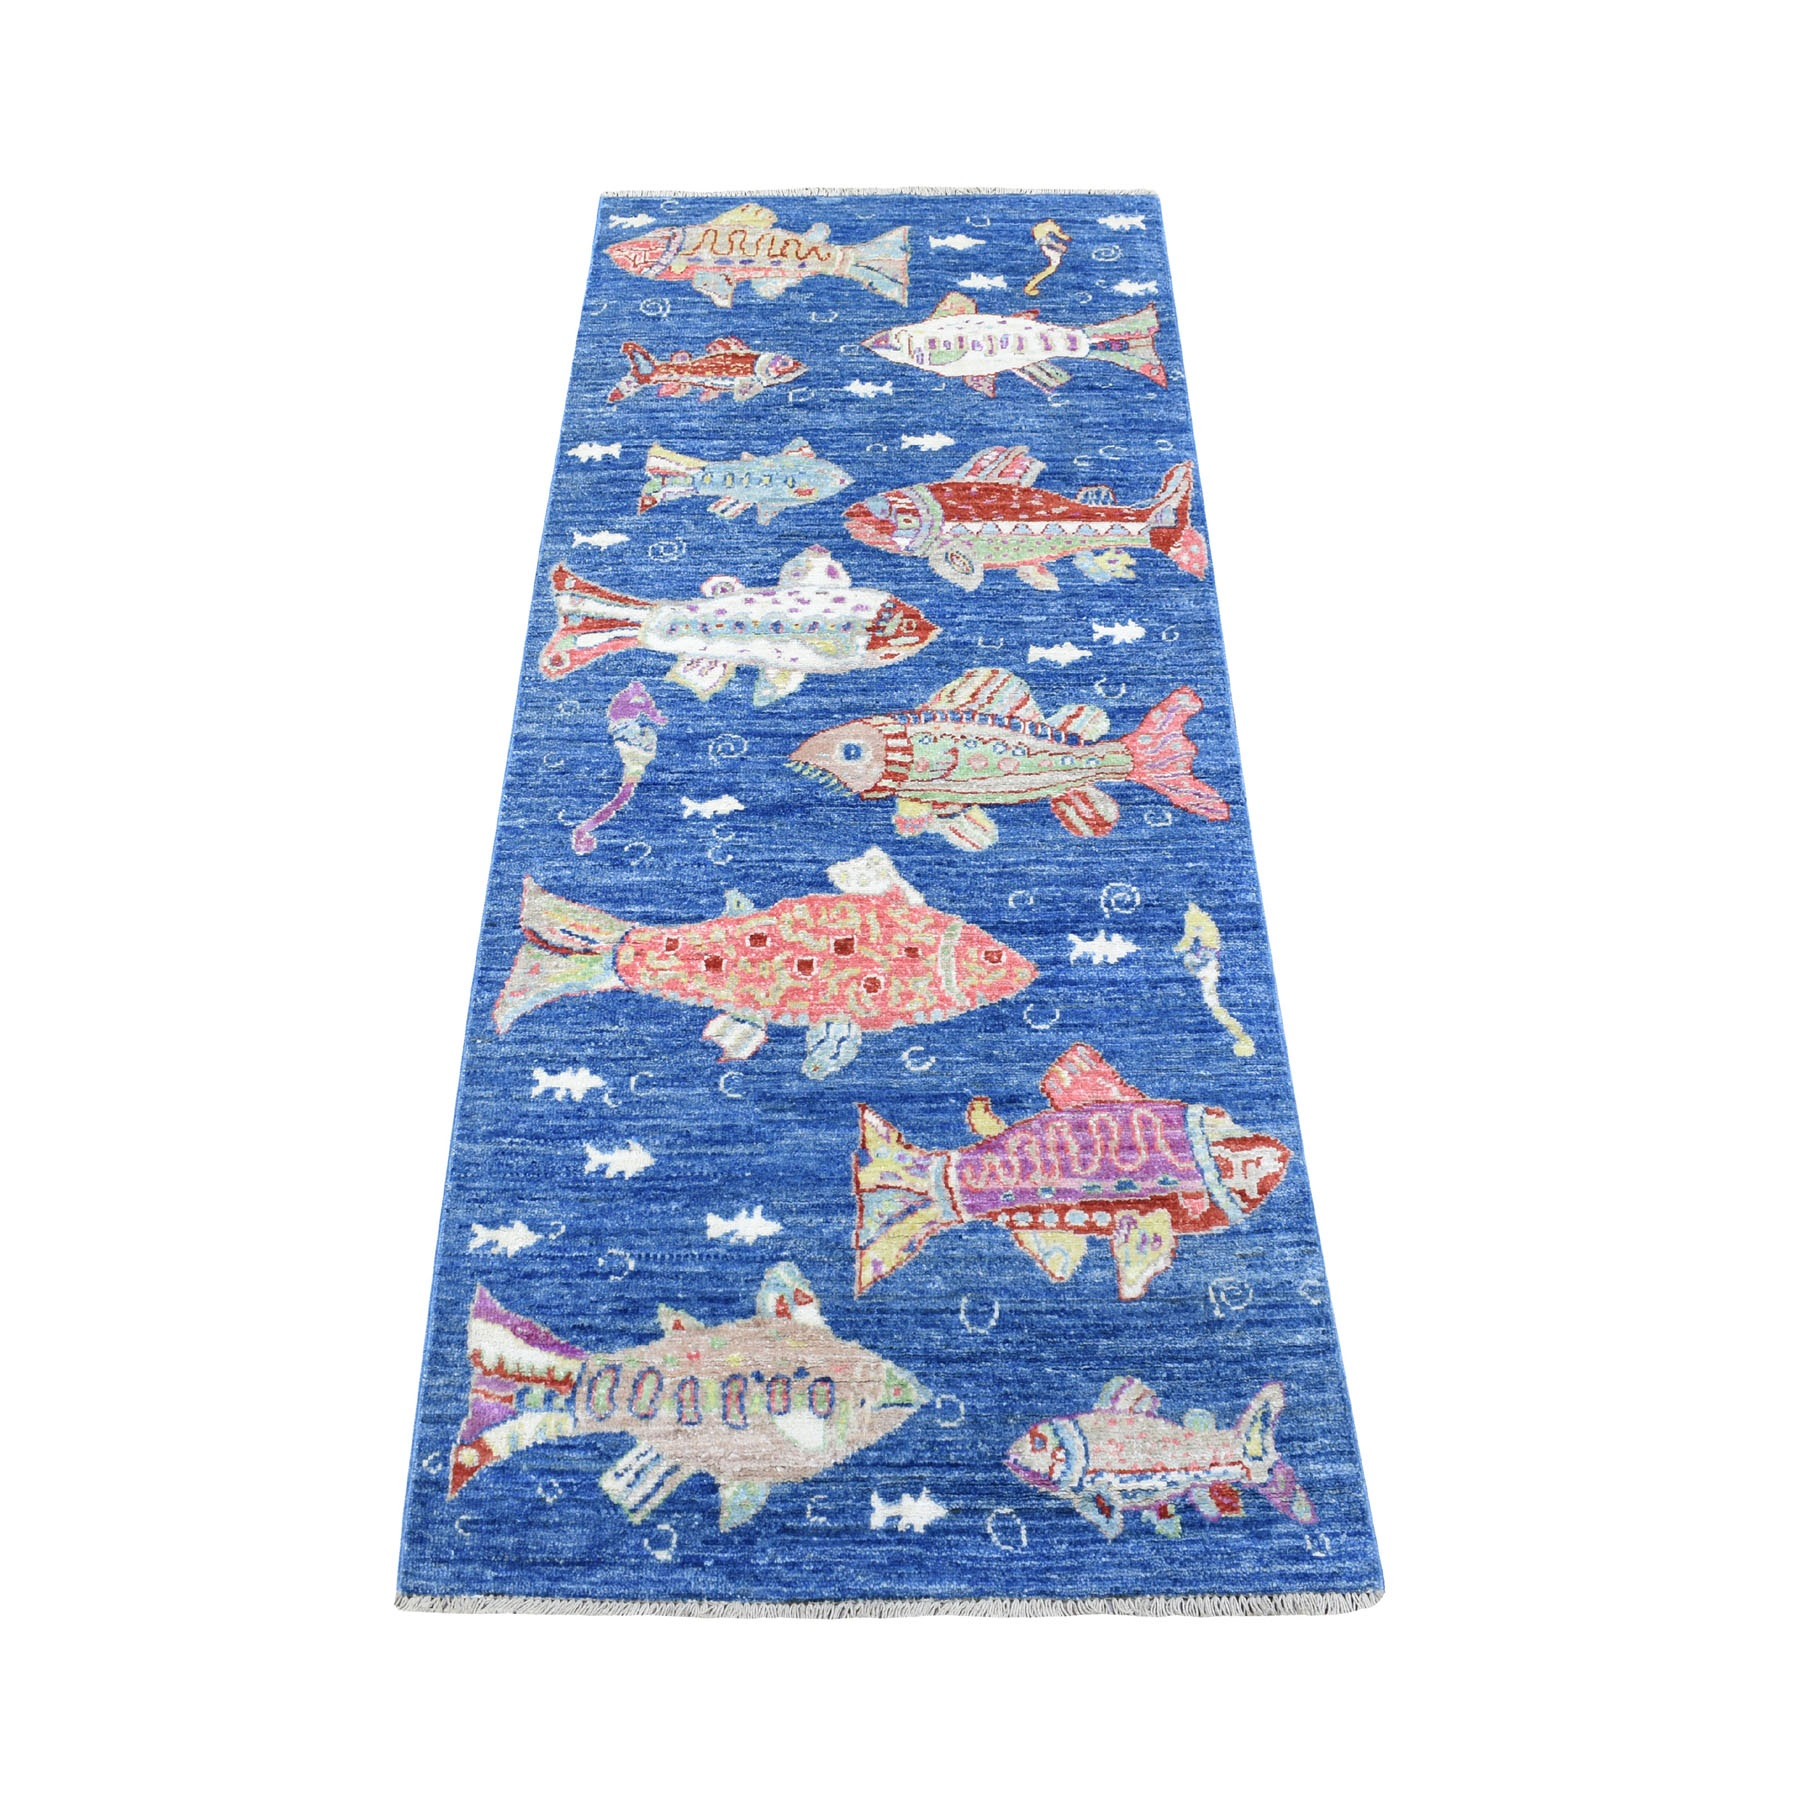 "2'6""x6' Oceanic Fish Design Organic Wool Afghan Peshawar Hand Knotted Oriental Runner Rug"